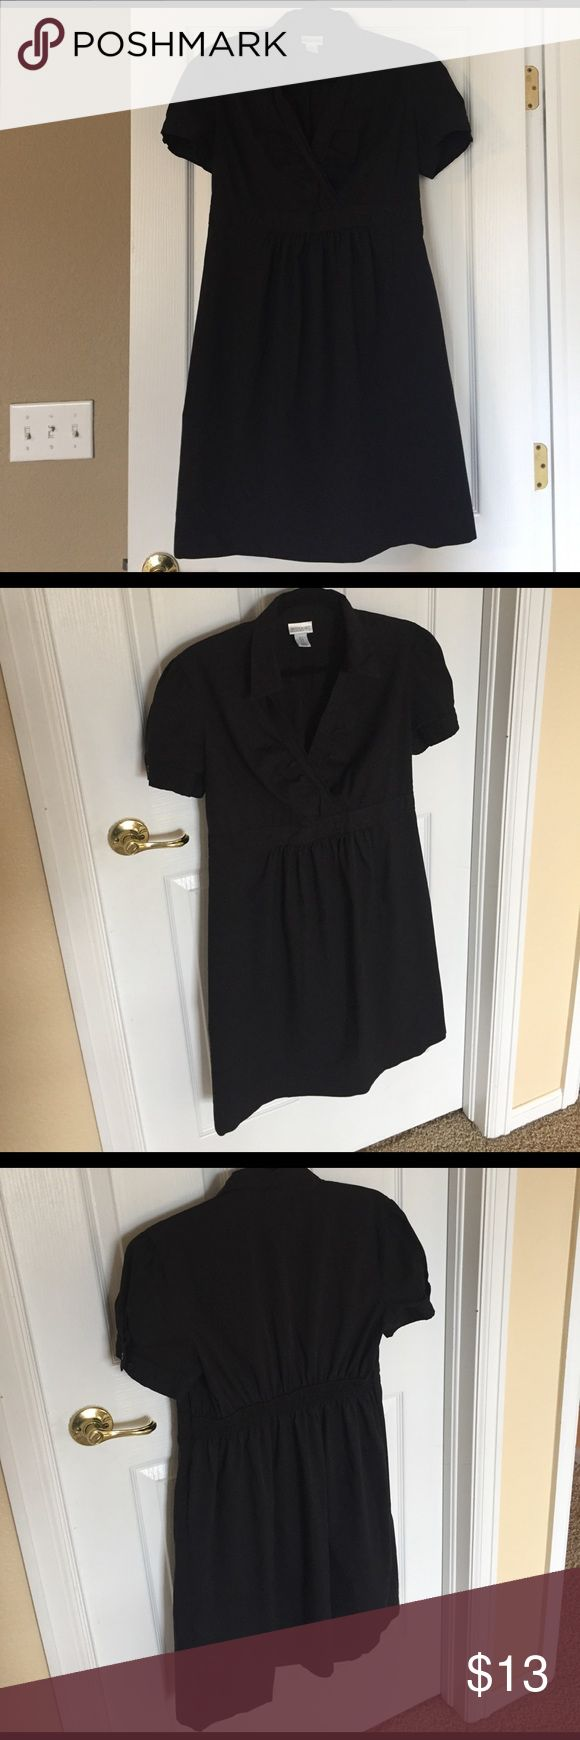 MATERNITY DRESS Maternity dress with short sleeves. Length is slightly above the knees - perfect for summer or work. Motherhood Maternity Dresses